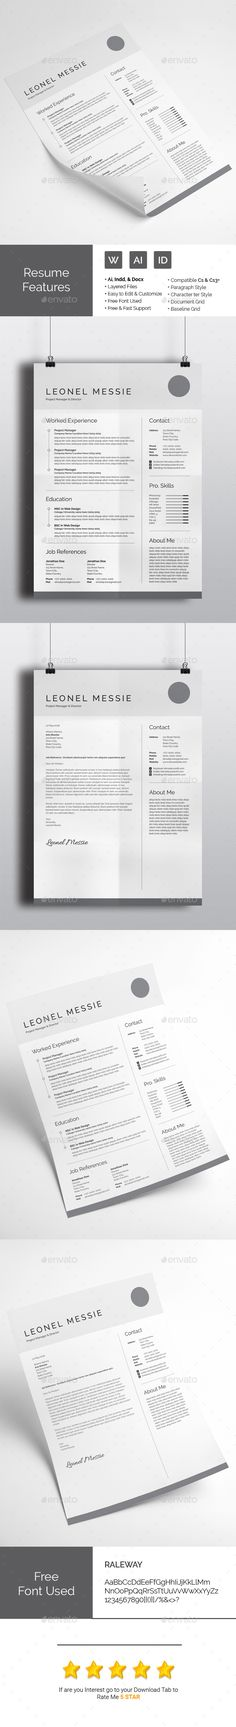 Resume CV Resume, Cv template download and Template - cv template download